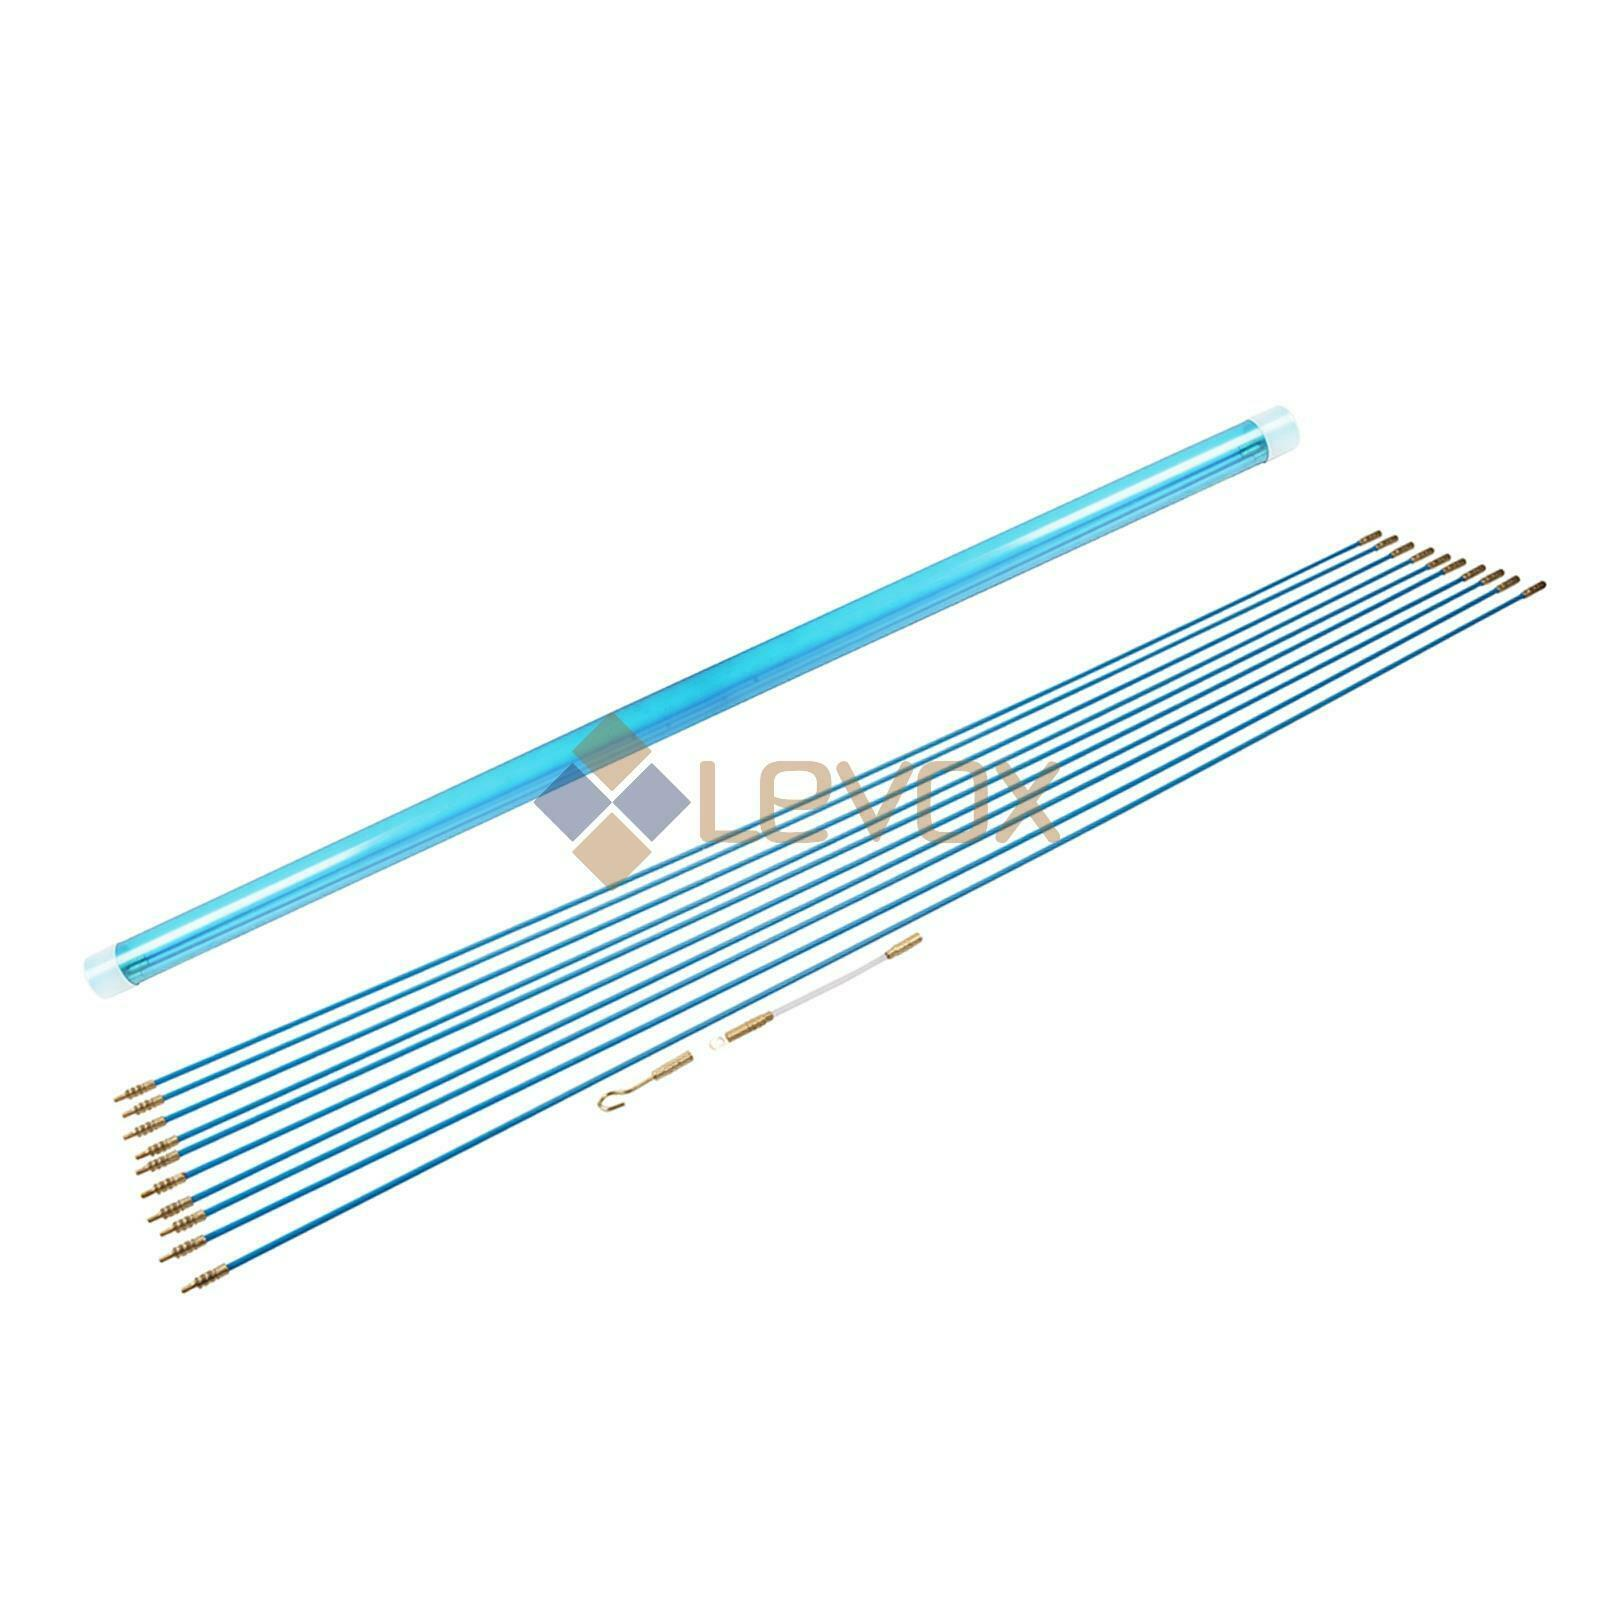 10 X 330MM CABLE ACCESS TOOL KIT 13PCE 633570